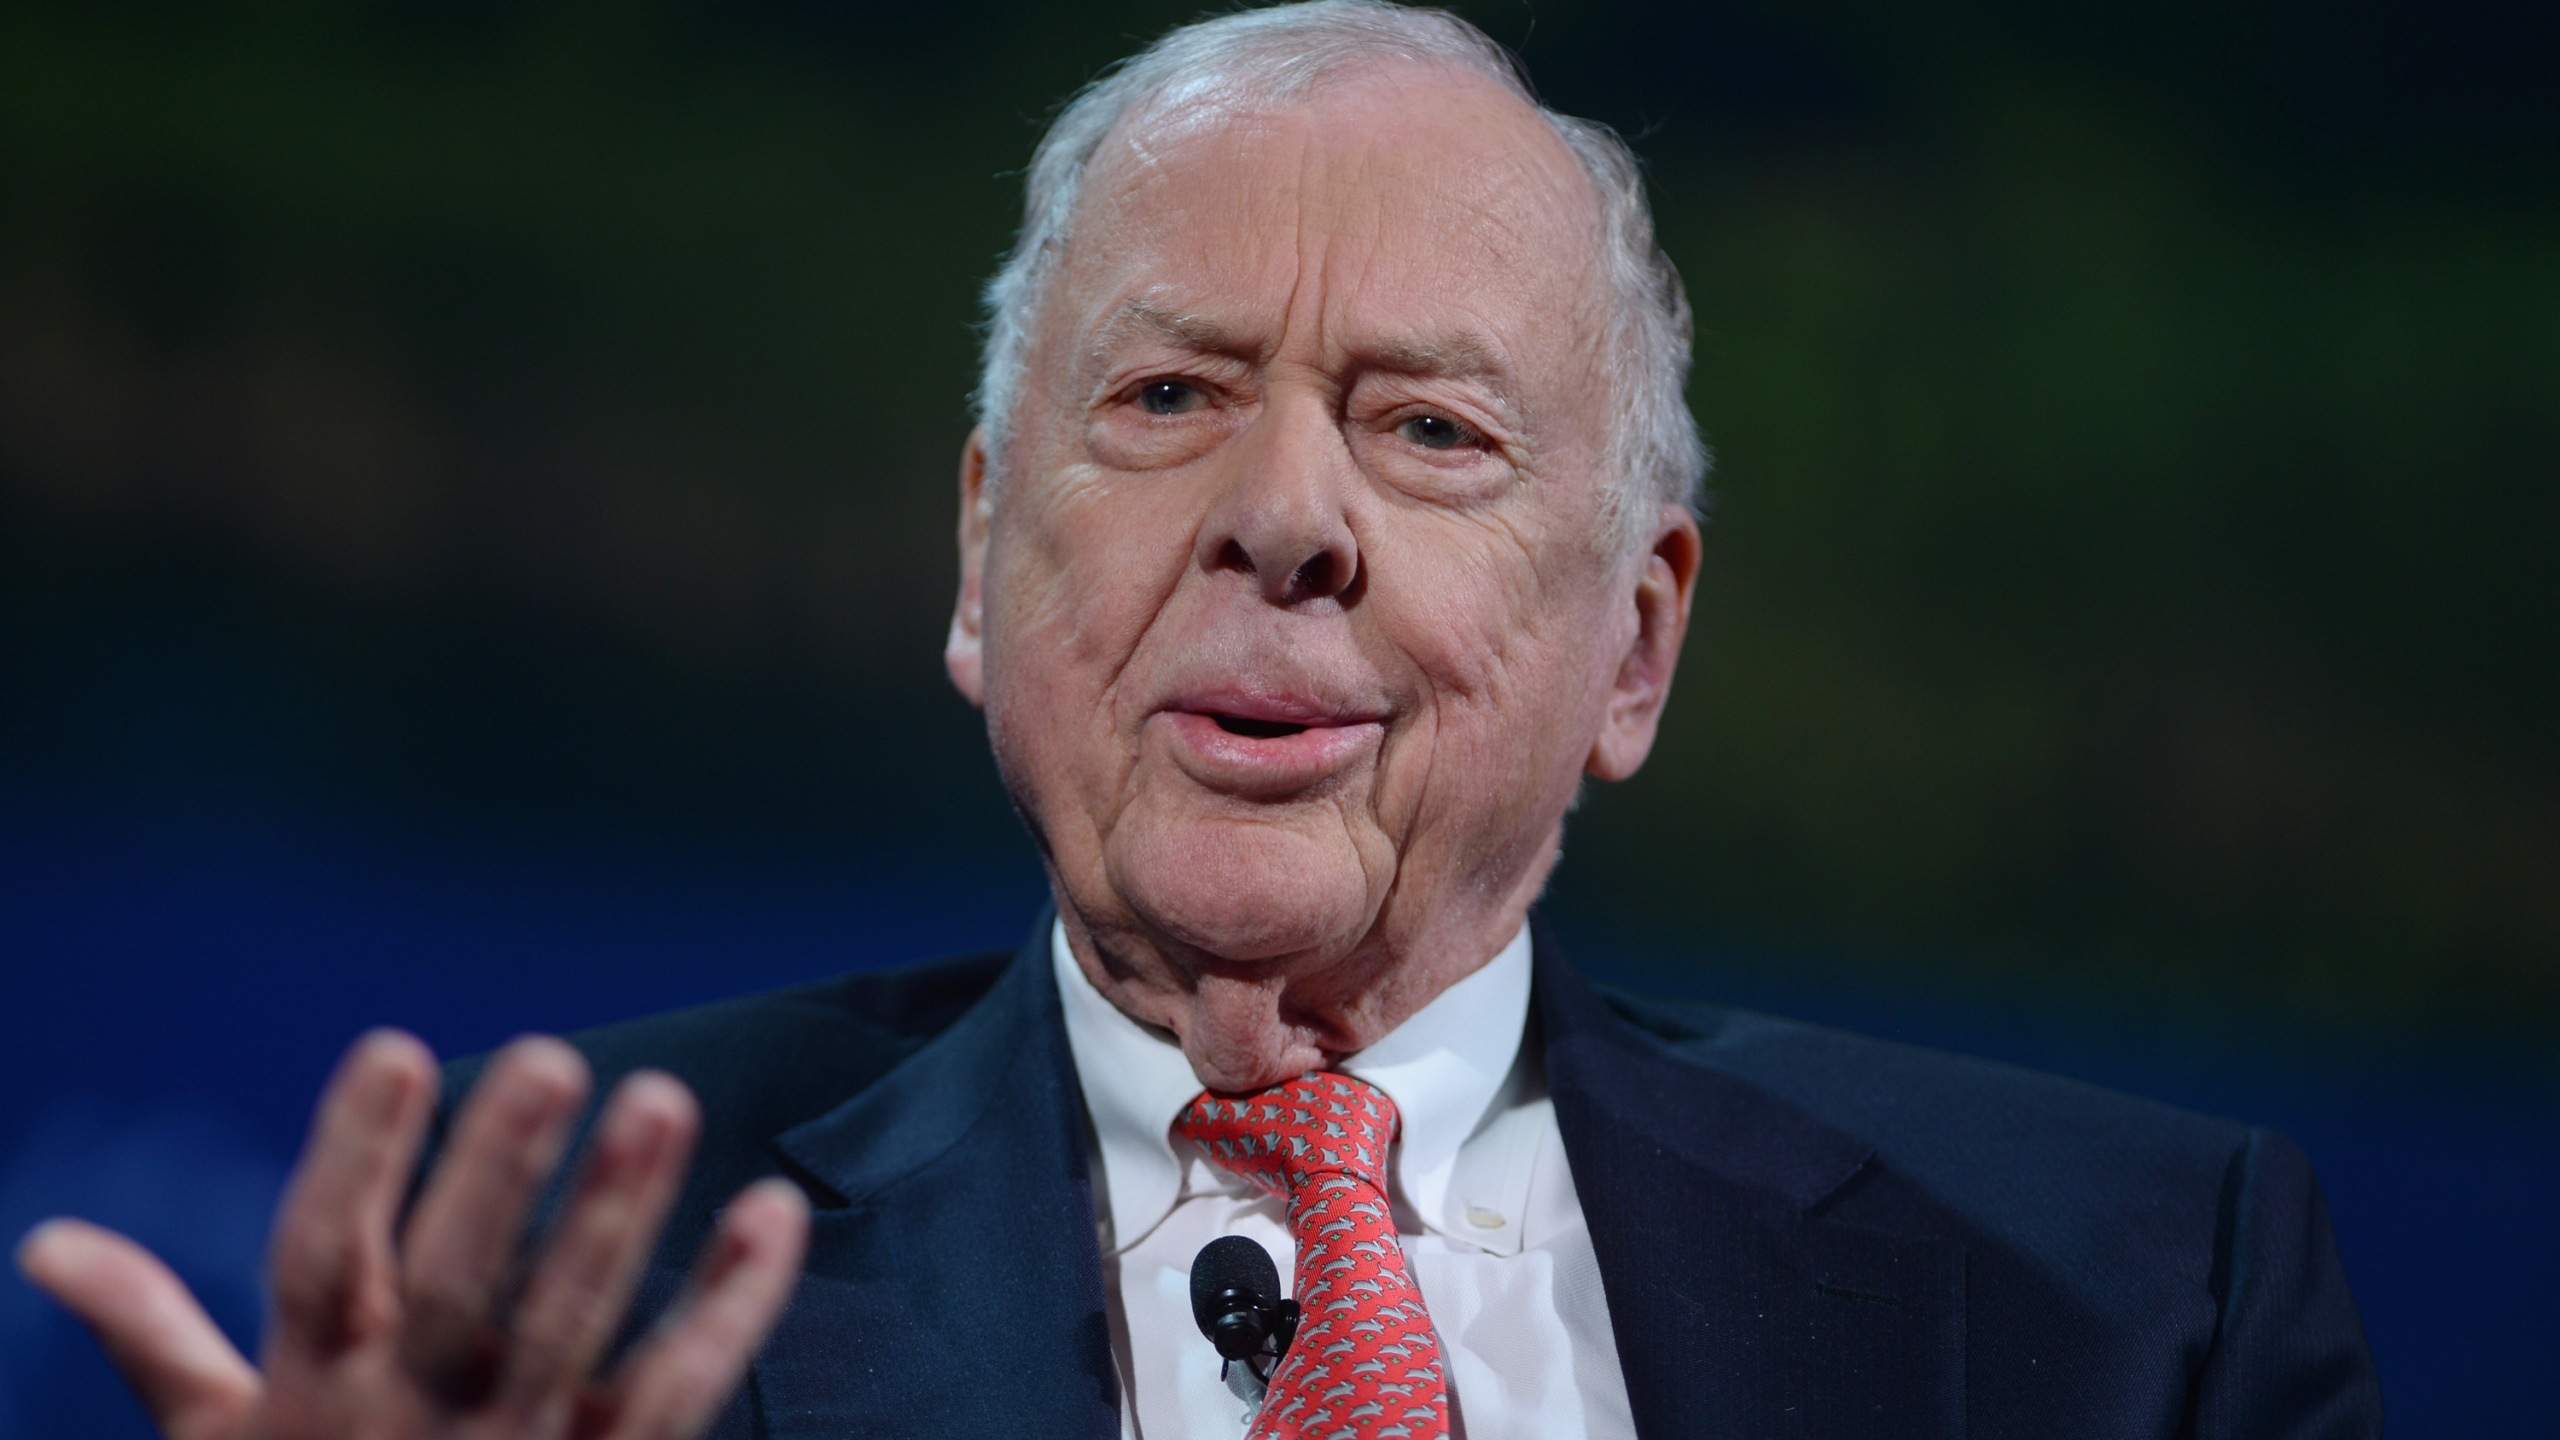 Founder and chairman of BP Capital Management T. Boone Pickens speaks at the 2016 Concordia Summit at Grand Hyatt in New York Sept. 19, 2016. (Credit: Riccardo Savi/Getty Images)